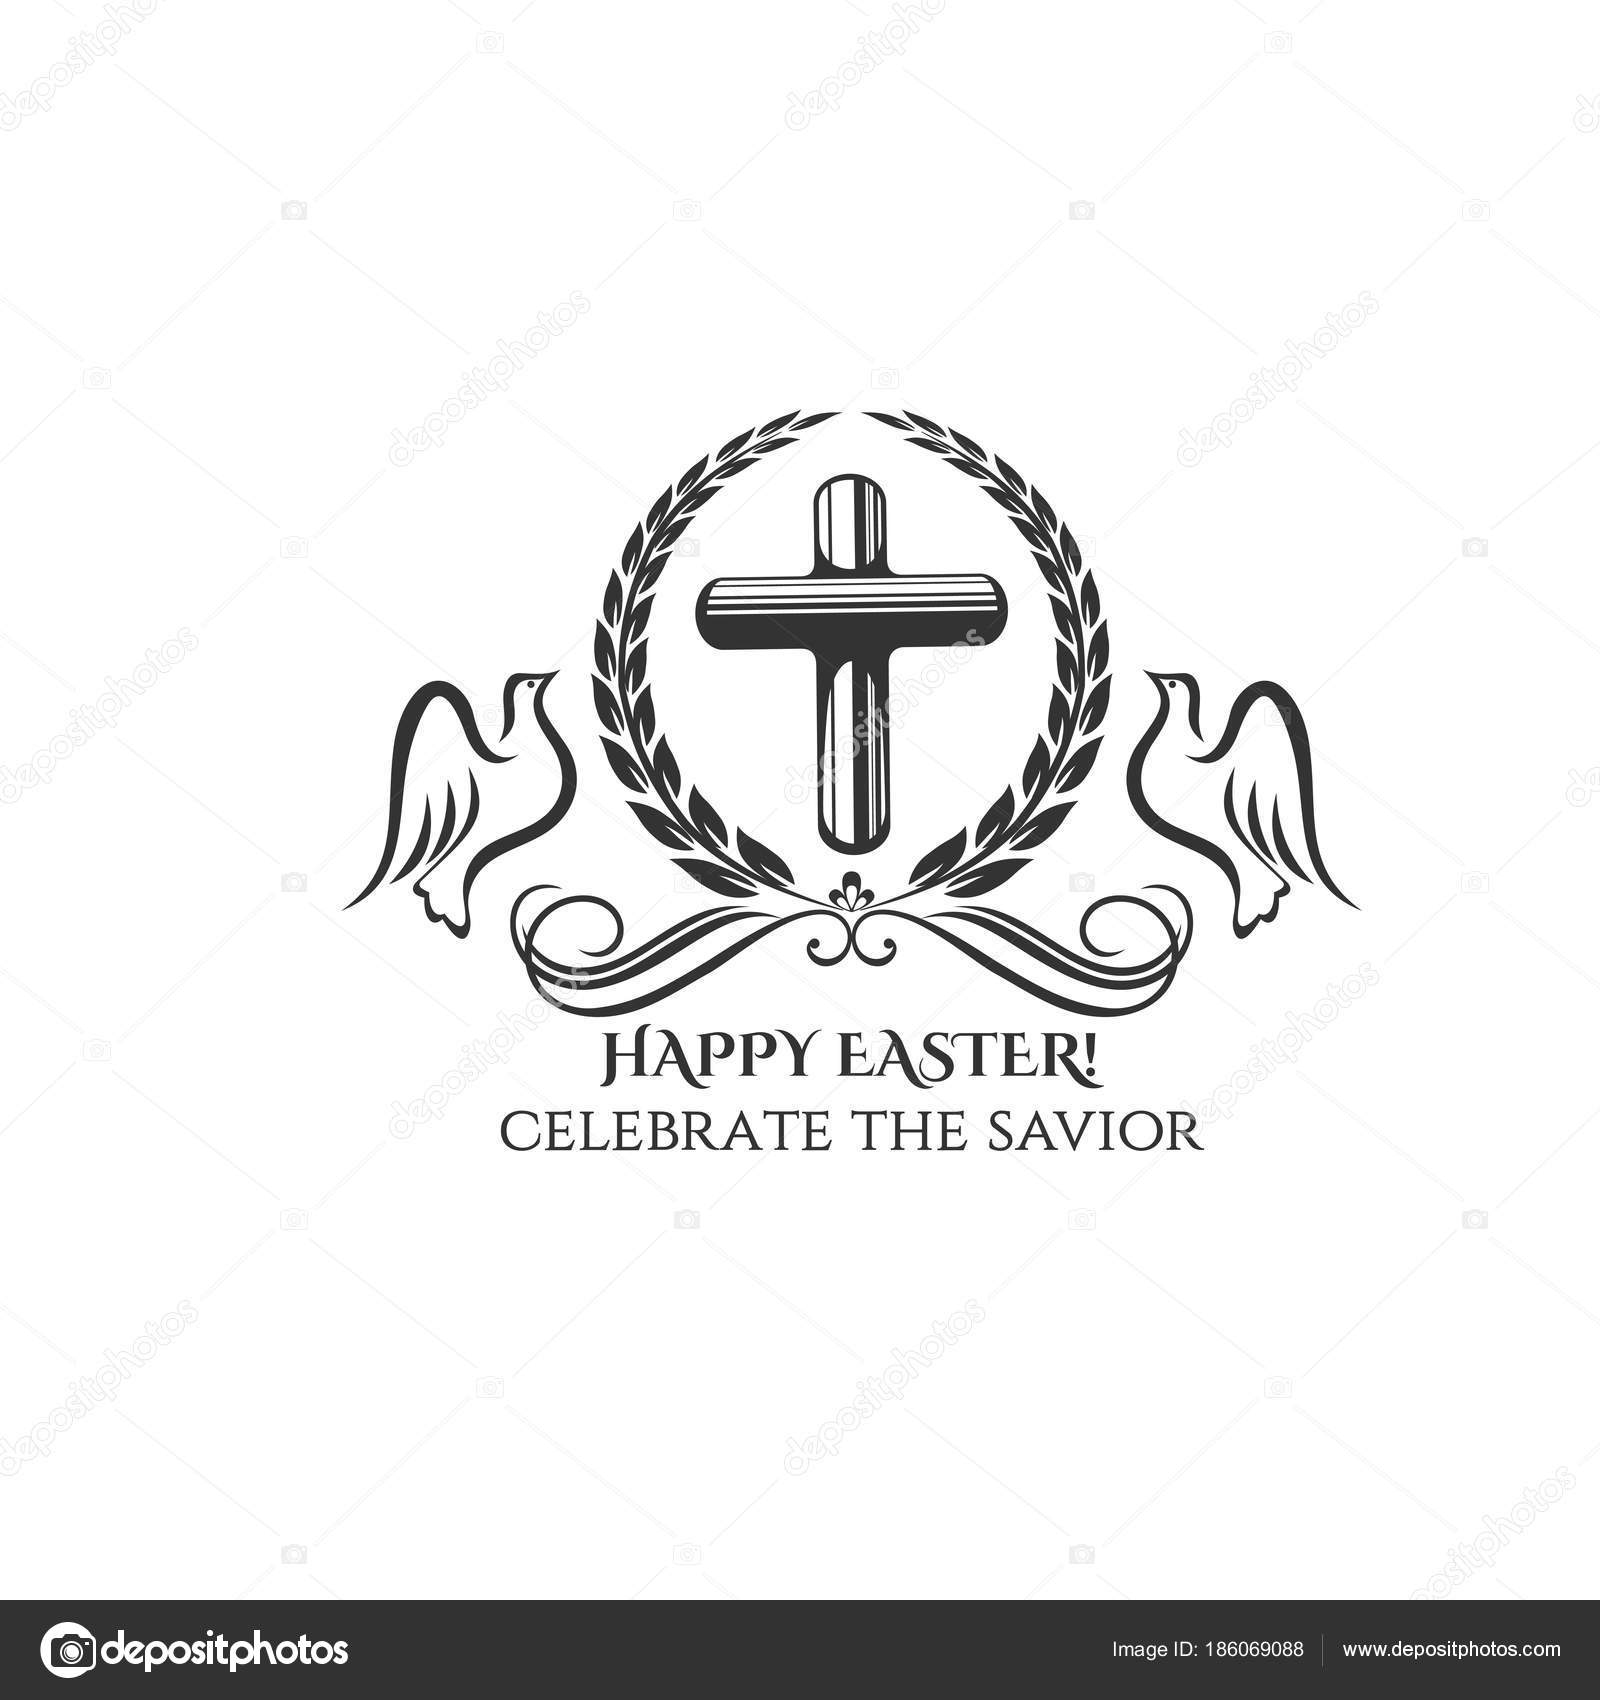 Happy easter cross and doves vector icon stock vector happy easter cross icon for easter day or resurrection sunday celebration greeting card design vector isolated symbol of catholic christian cross buycottarizona Images